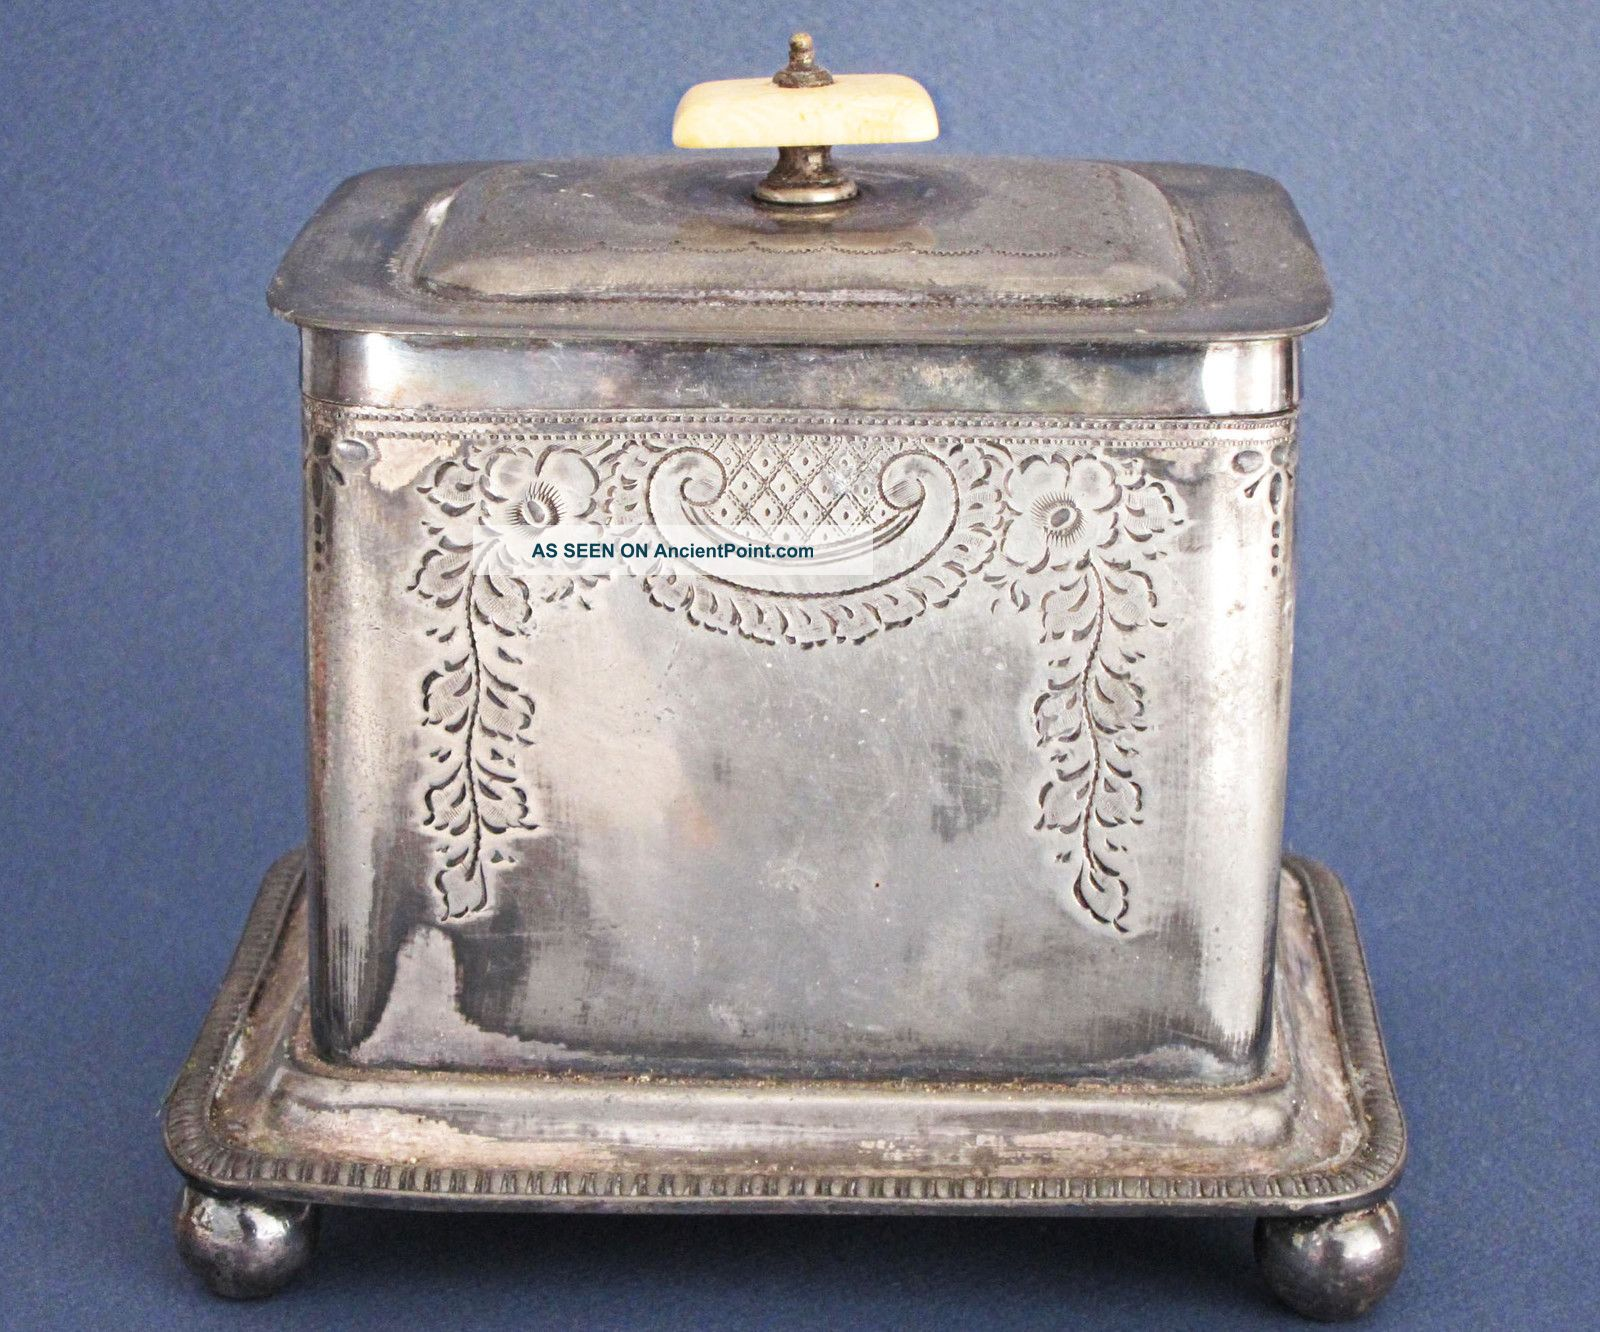 Victorian Antique Silver Plated Biscuit Box James Dixon 1870 Barrel Cookie Jar Boxes photo